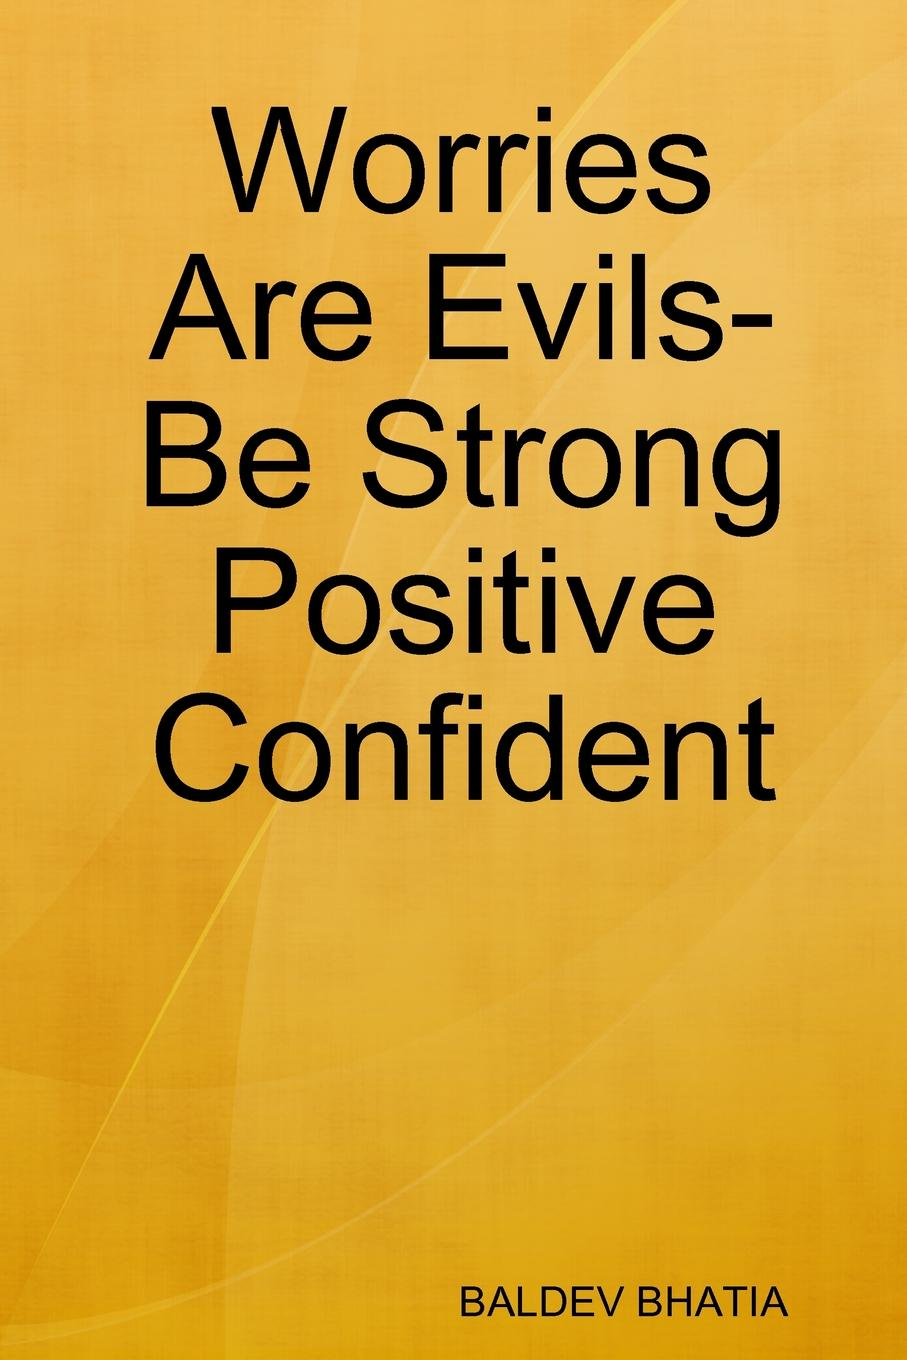 BALDEV BHATIA Worries Are Evils- Be Strong Positive Confident